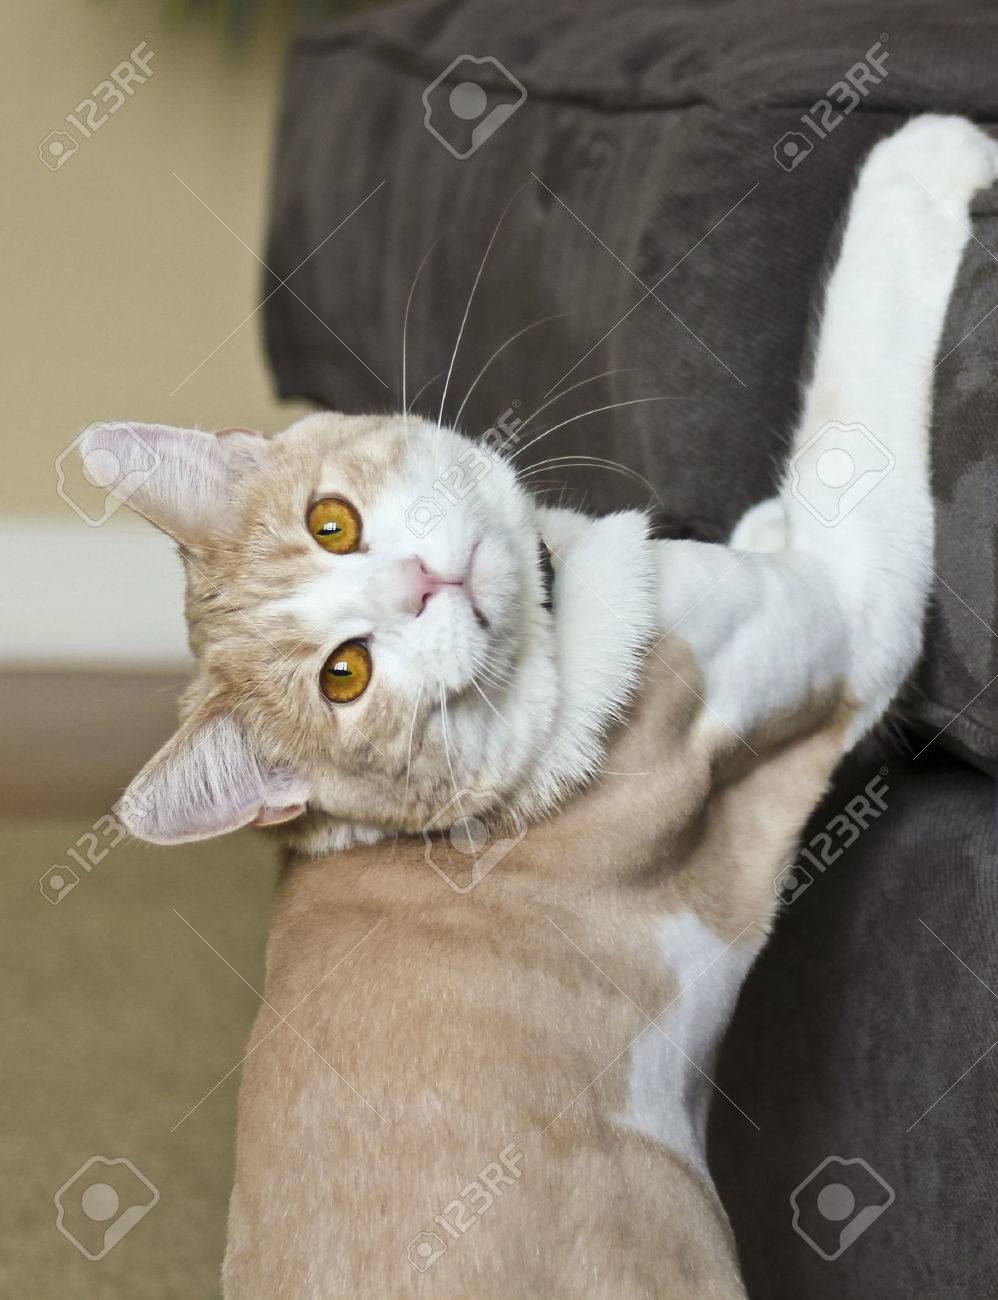 A Tabby Cream House Cat Caught in the Act Scratching a Sofa - 41763574